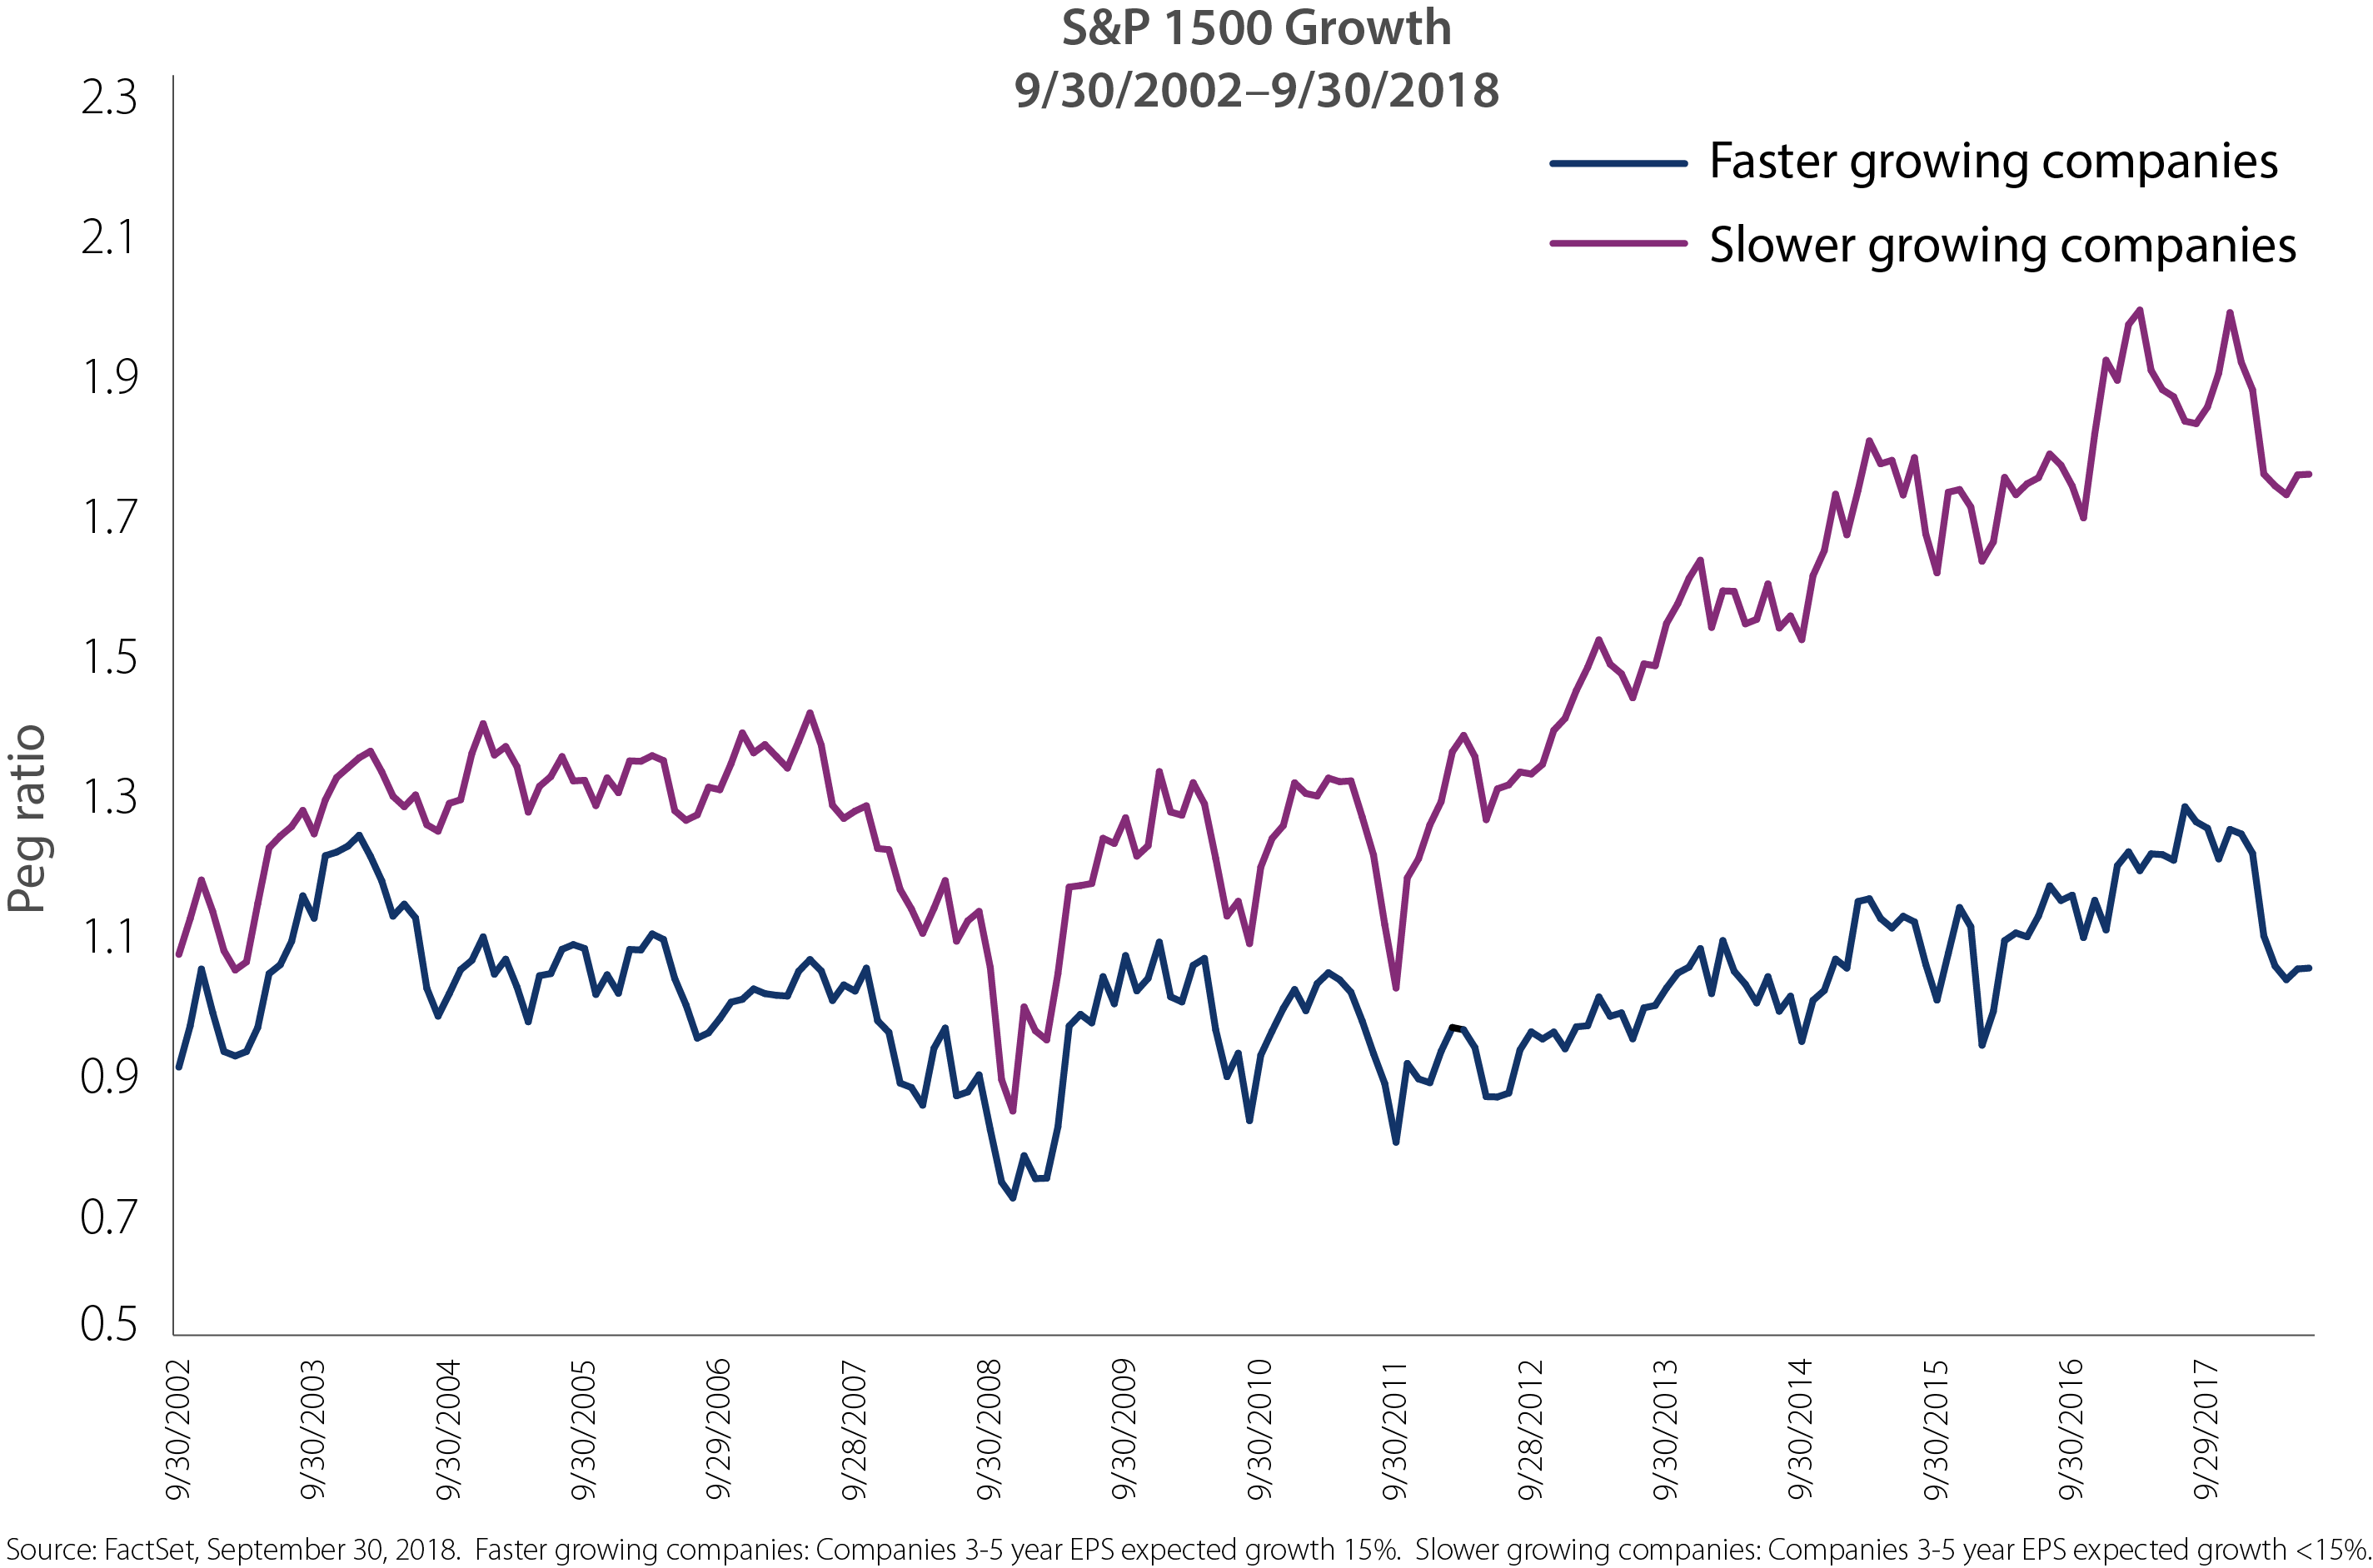 S&P 1500 Growth 9/30/2002-9/30/2018. historically faster-growing stocks had continued to have more attractive valuations relative to slower-growing stocks.